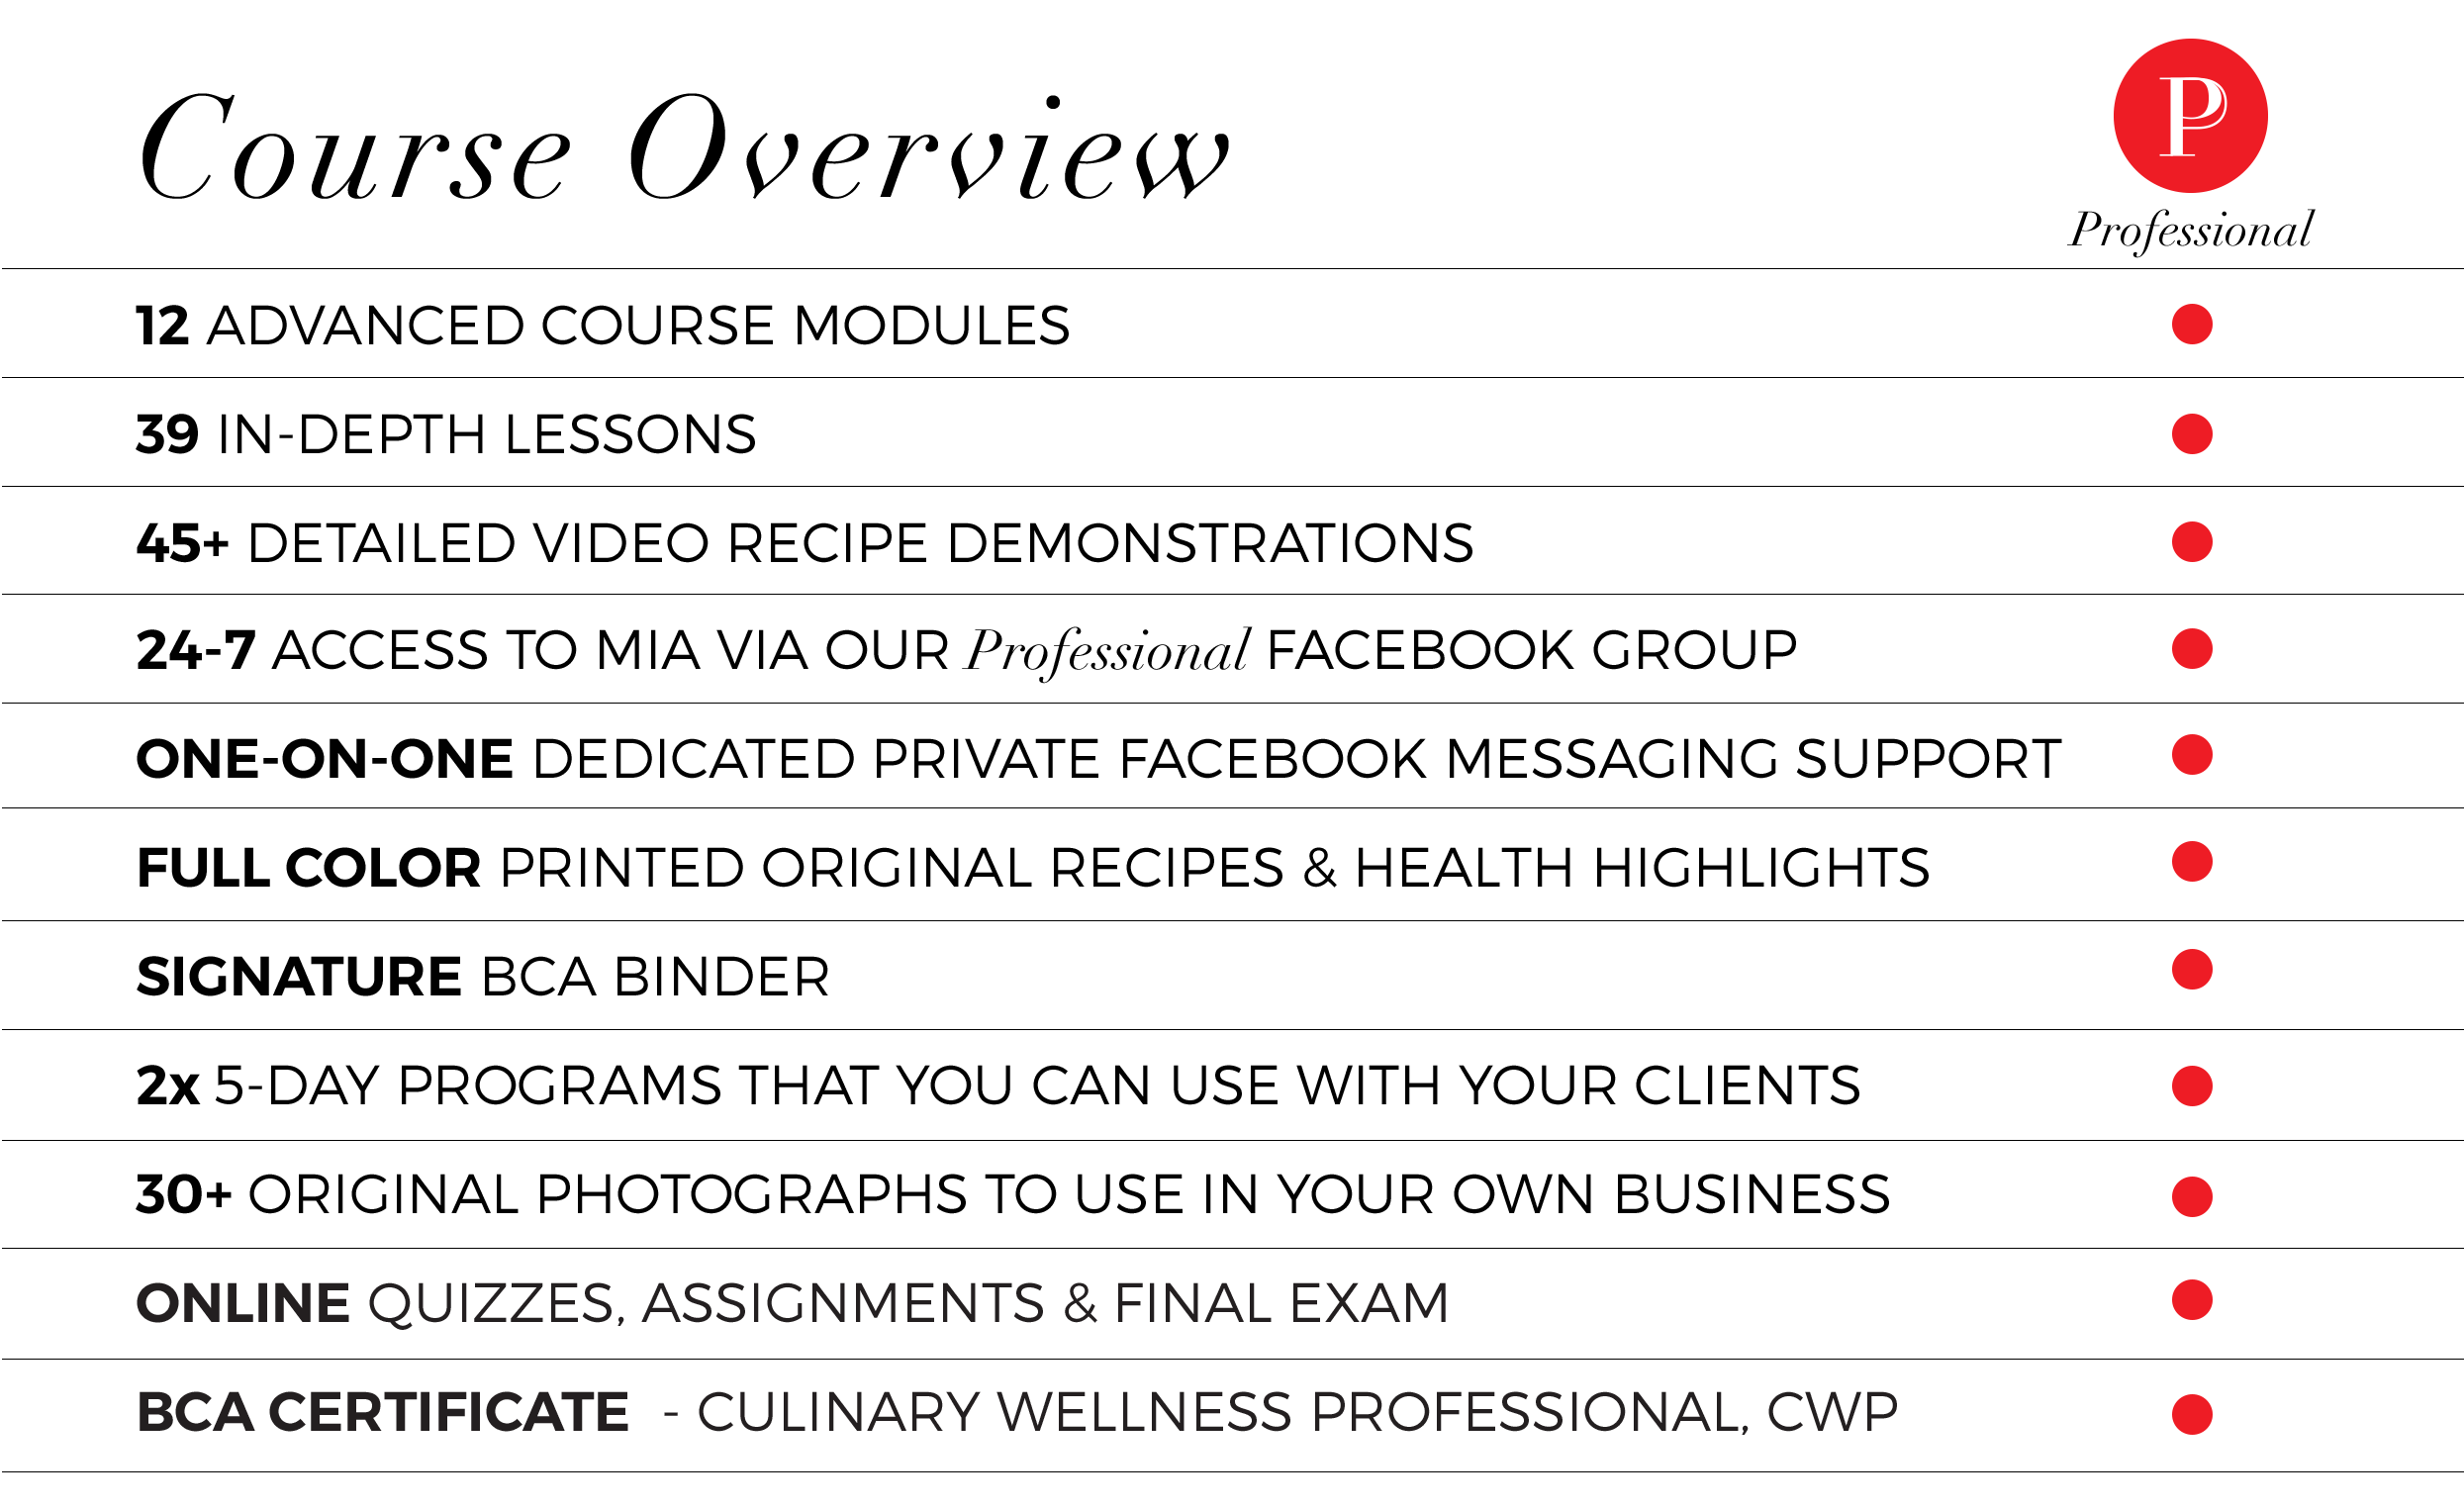 Brooklyn Culinary Arts Online Learning Culinary Wellness